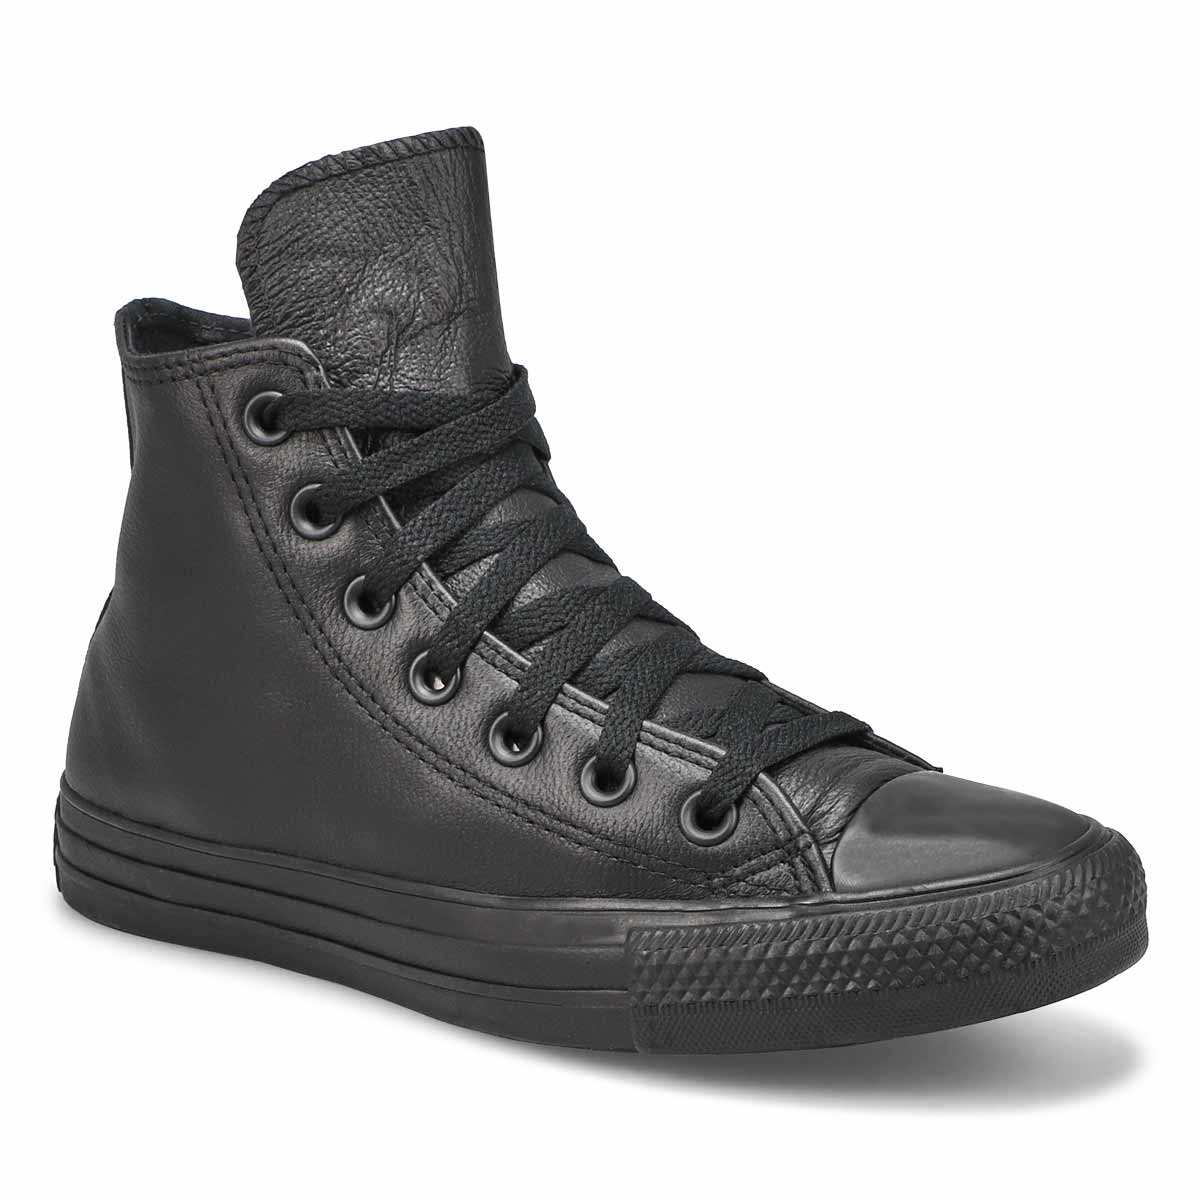 Lds CT All Star Leather blk mono hi top